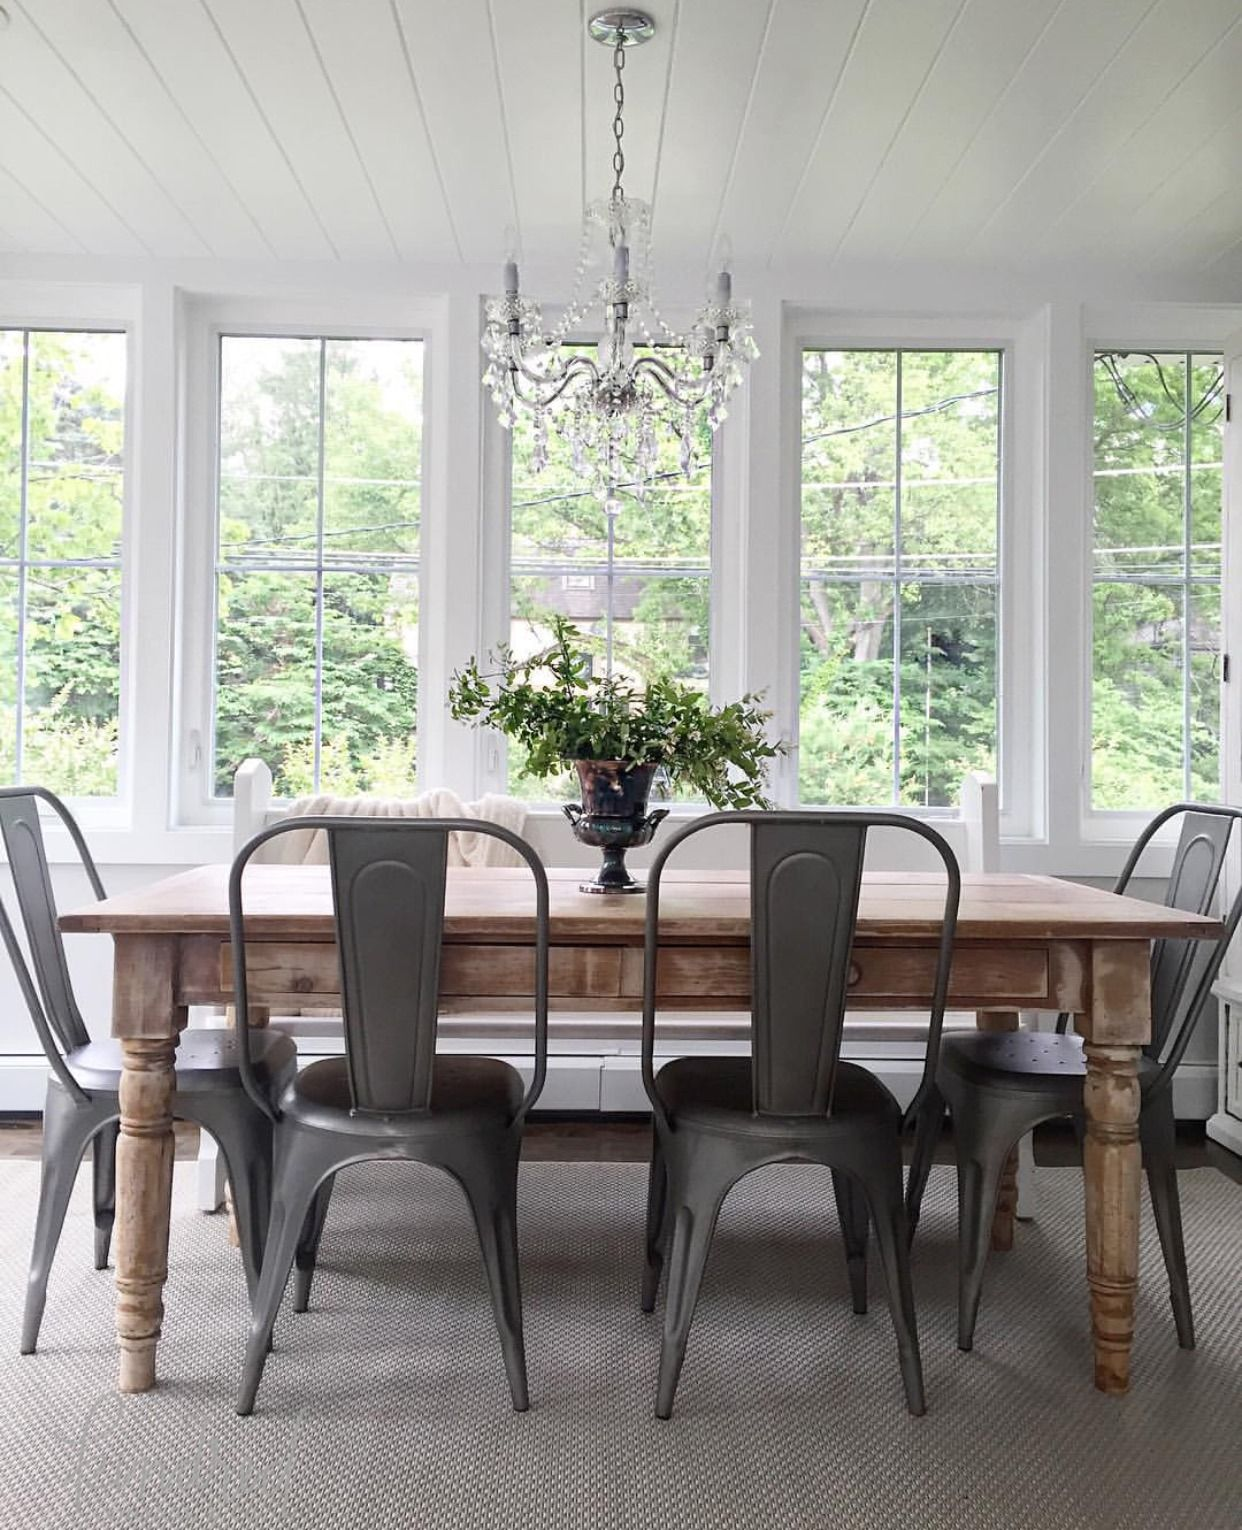 Kindred vintage farmhouse style Home & Design Inspiration